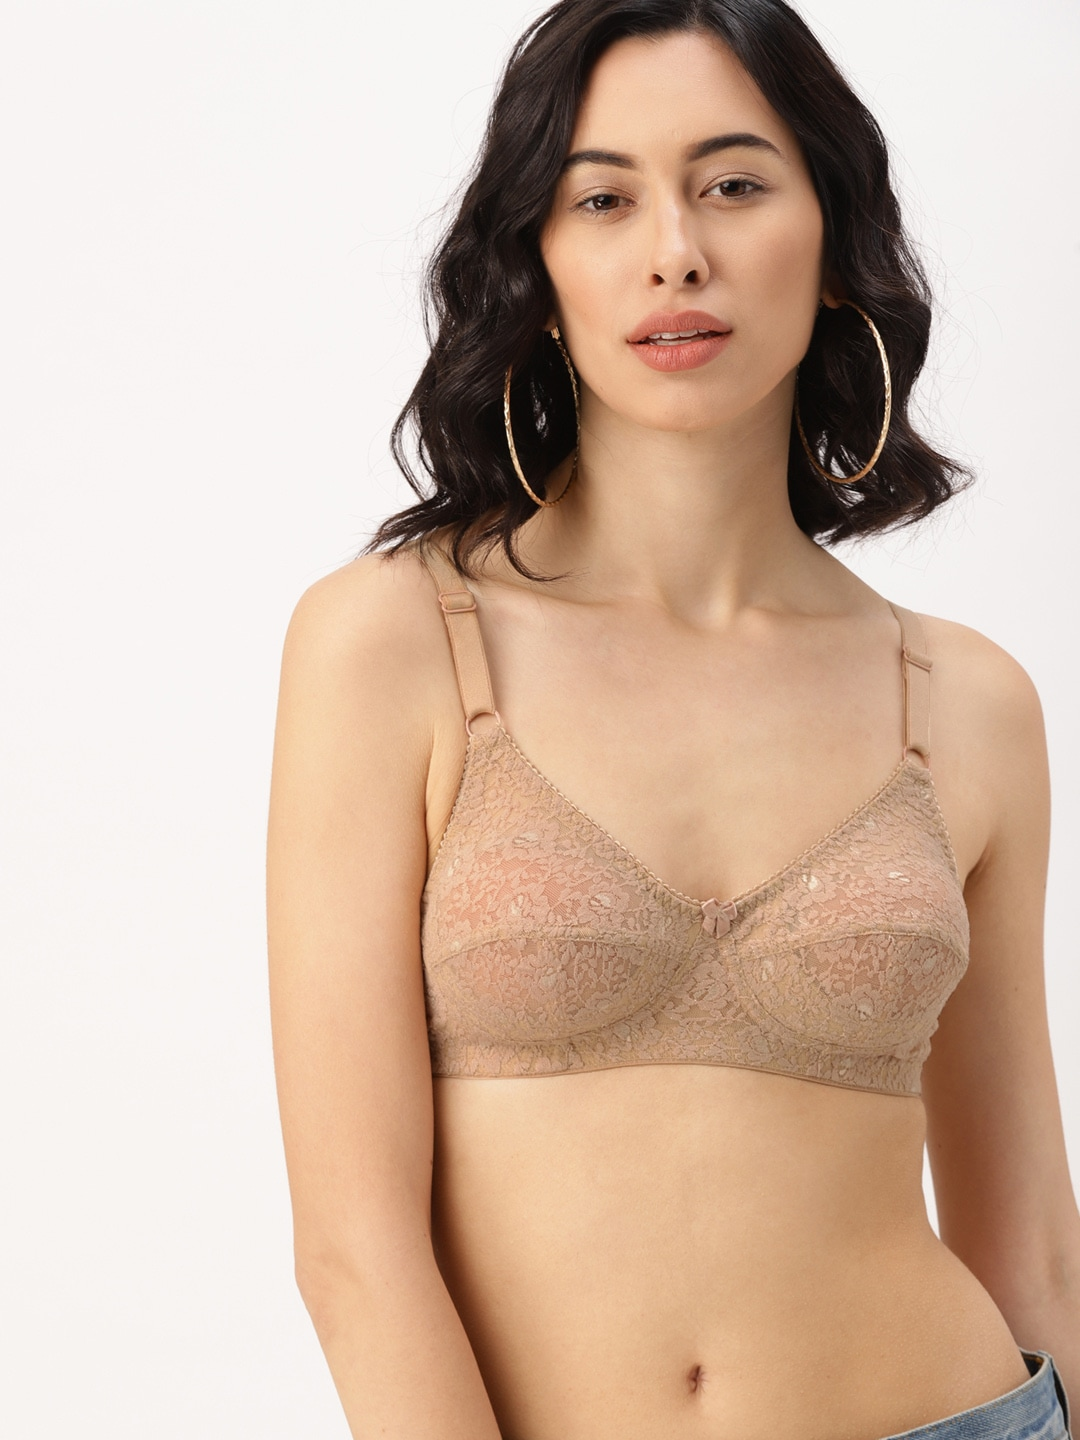 477d3398f44ad Laced Bra - Buy Laced Bra online in India